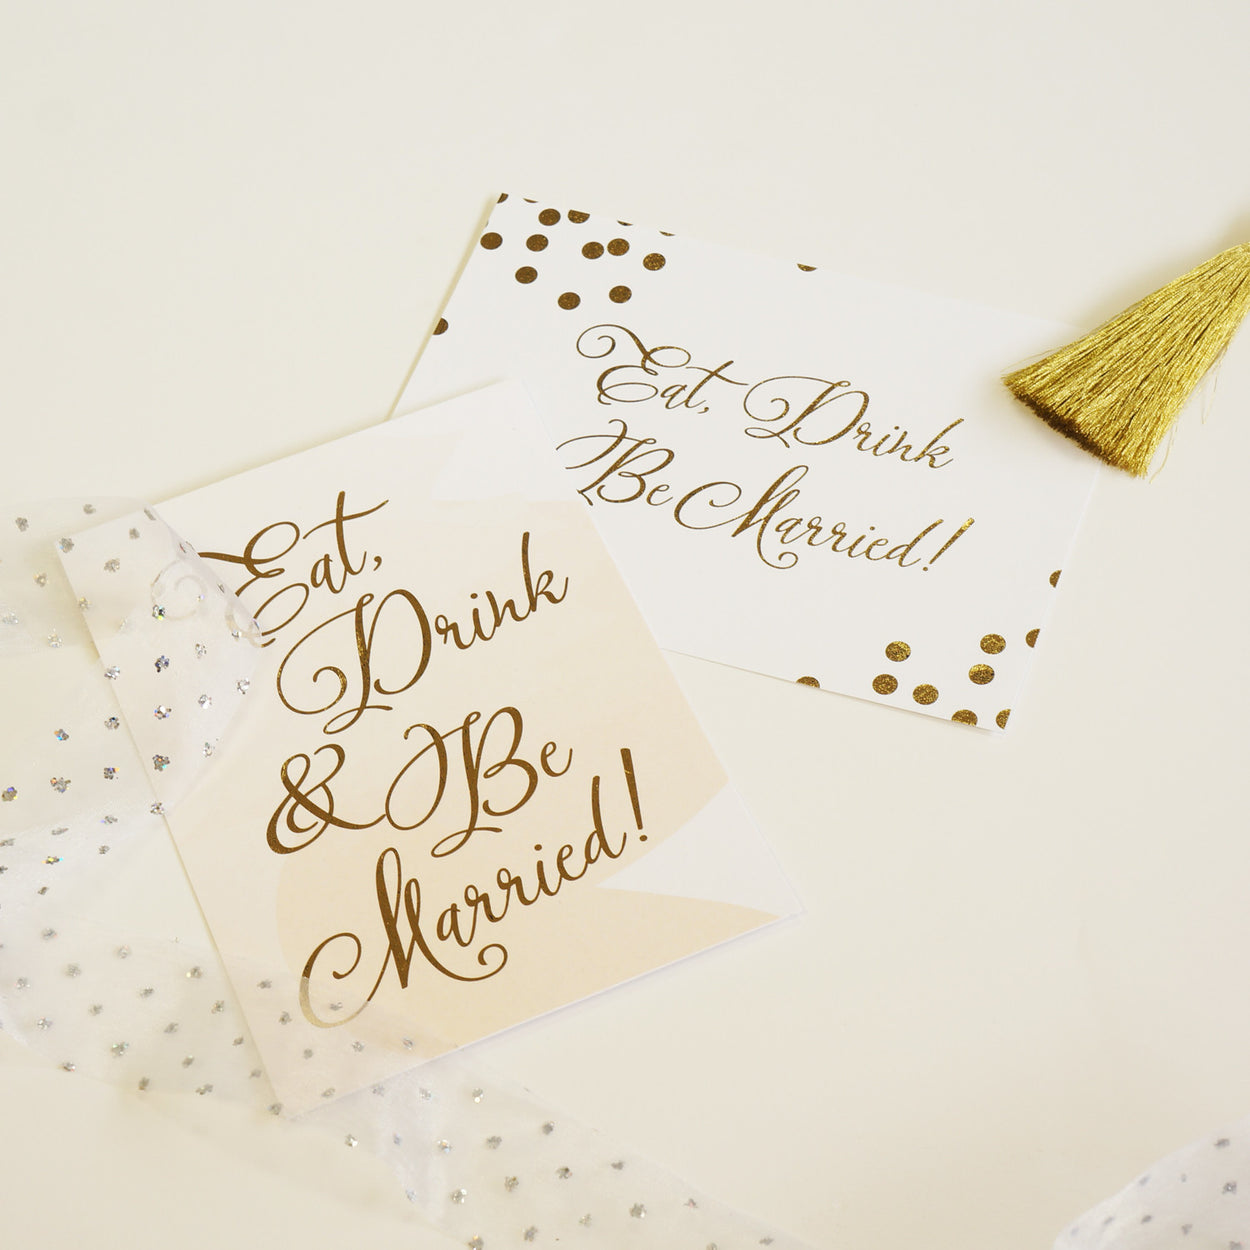 Eat Drink & Be Married | Confetti Gold Foil - shop greeting cards, handmade stationery, & wedding invitations by dodeline design - 3